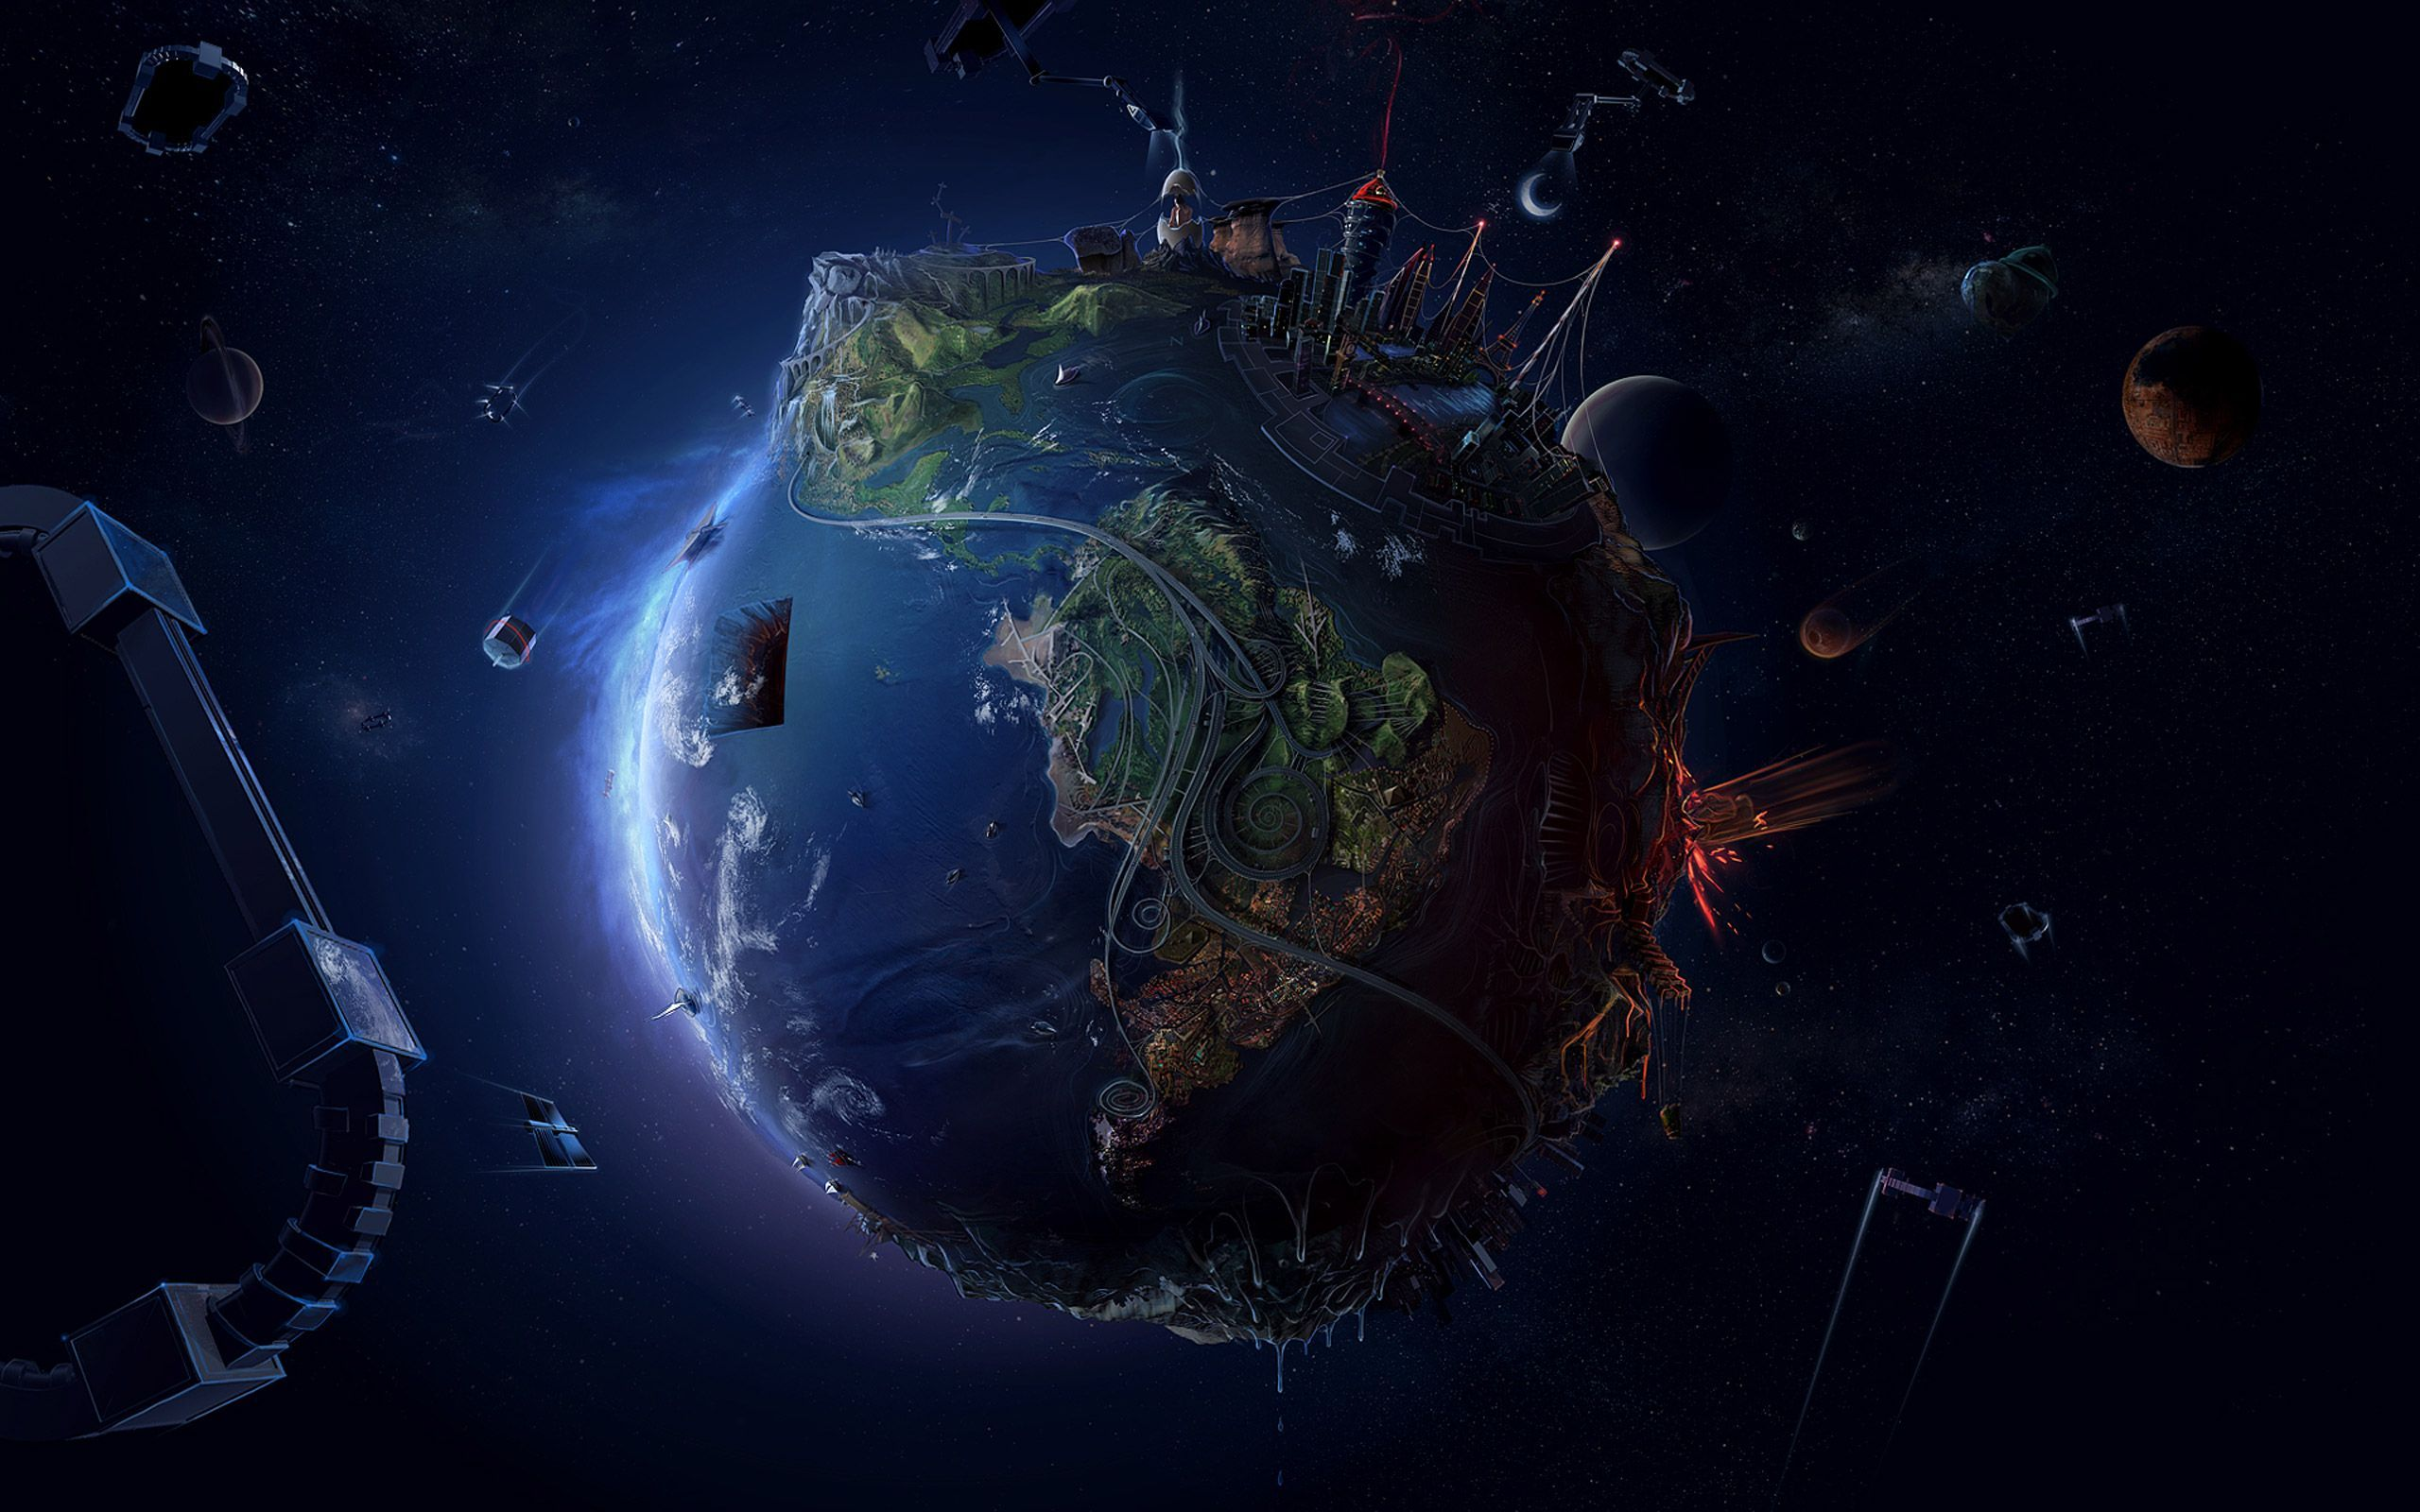 HQFX Earth Best Earth Wallpapers